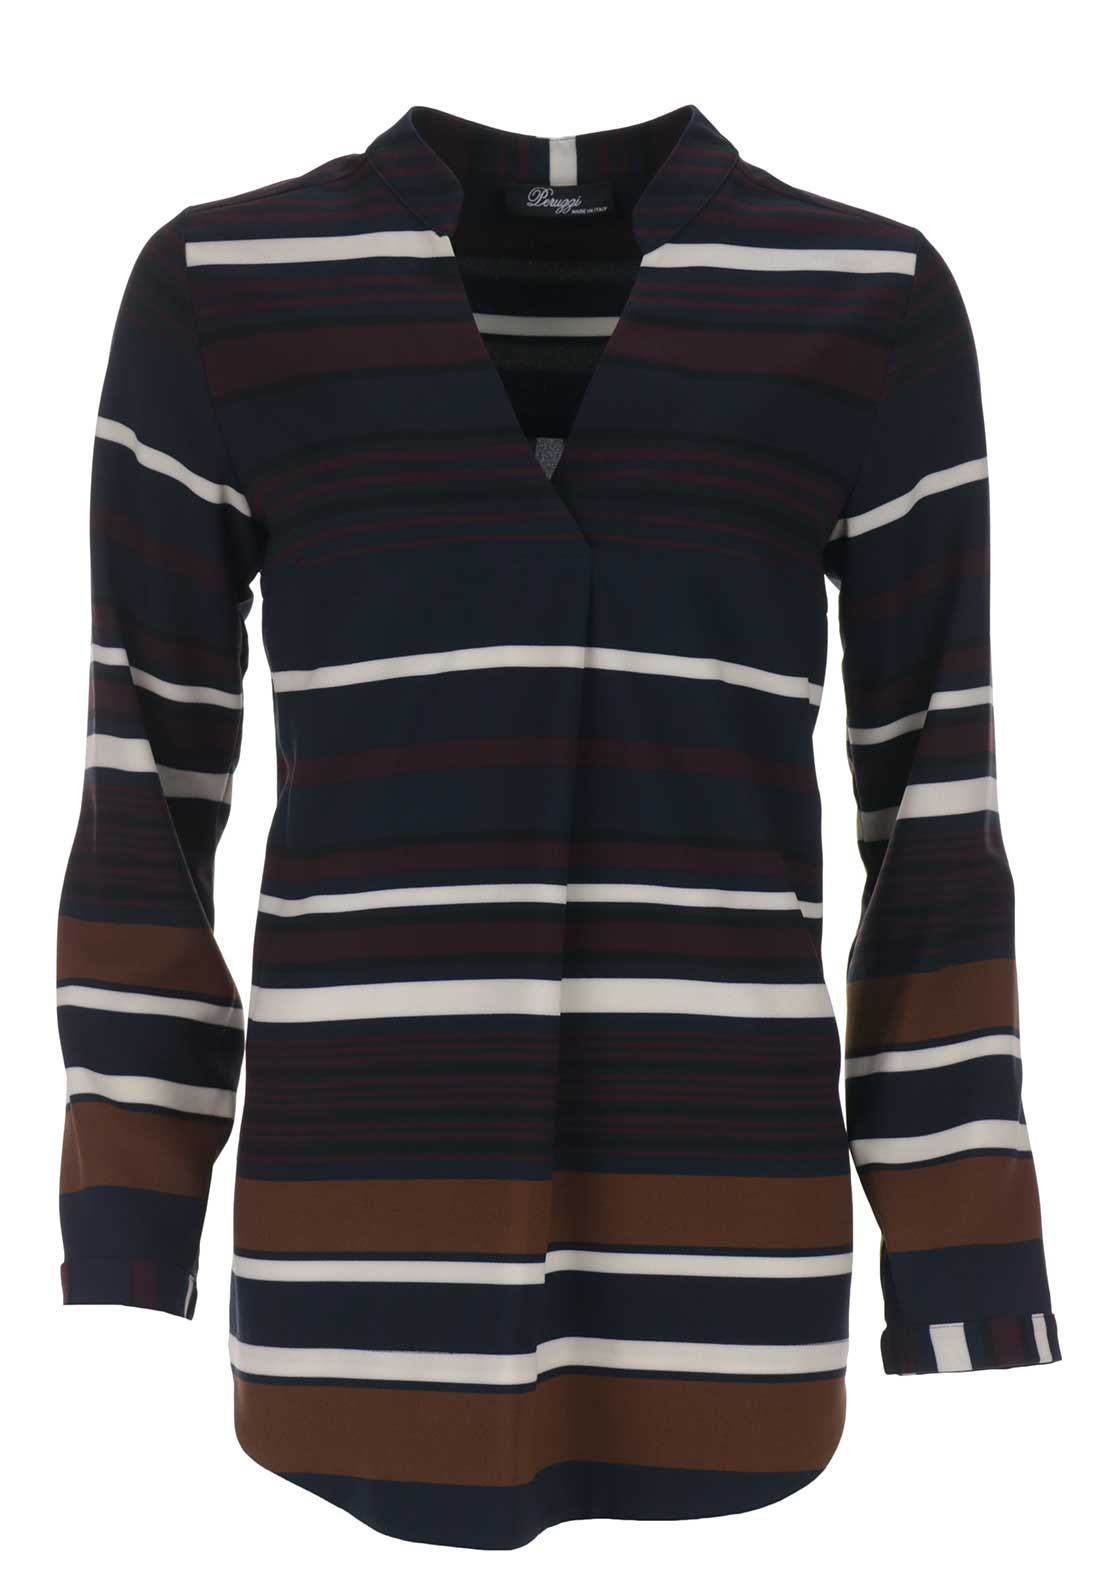 Peruzzi Striped Tunic Blouse, Multi-Coloured